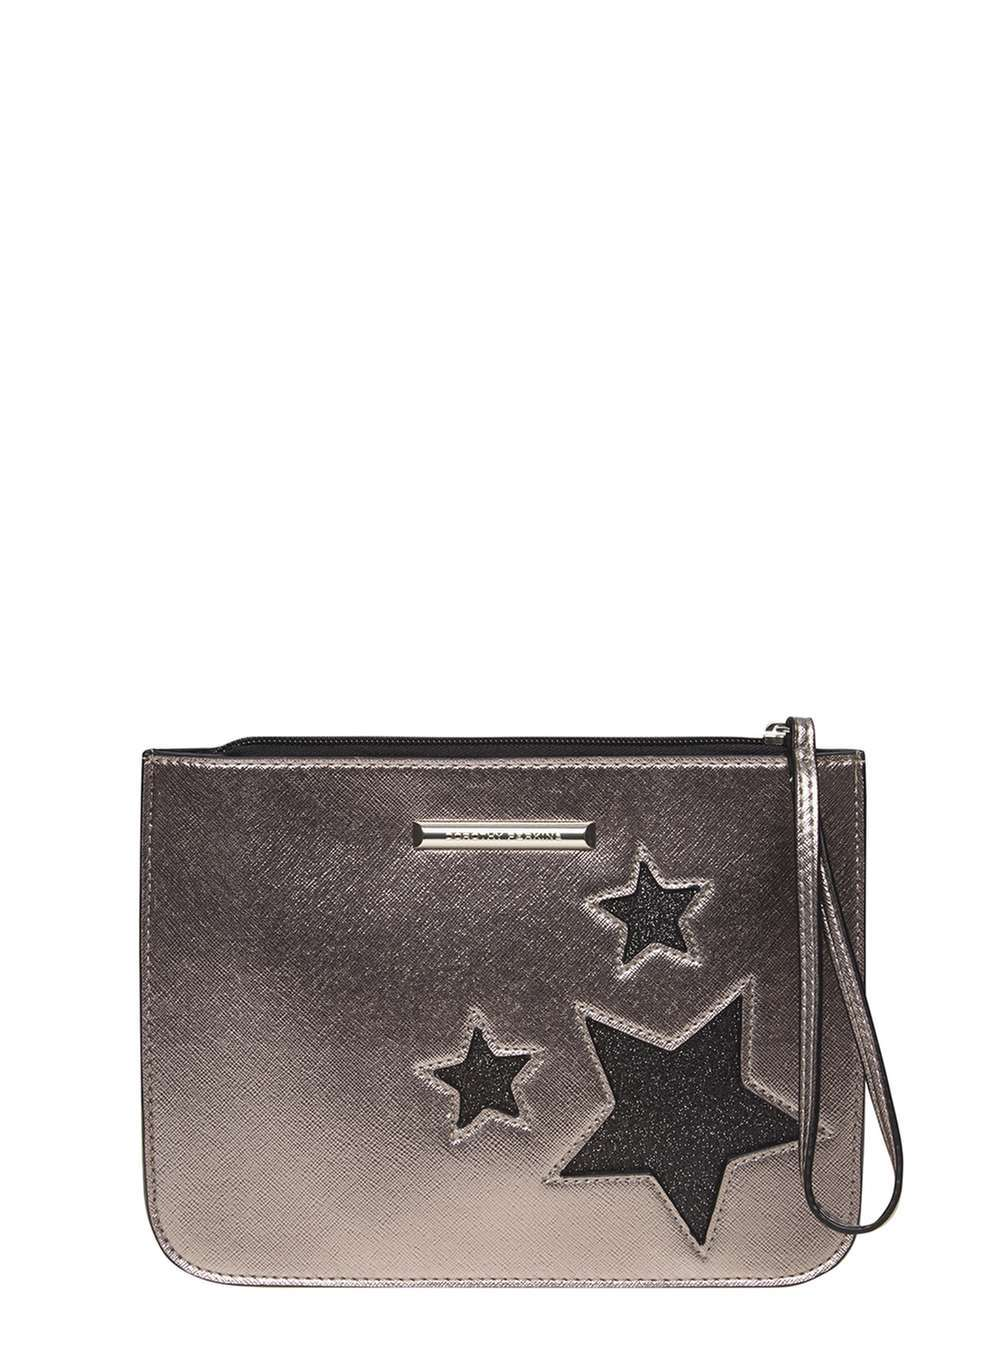 Womens Silver Star Wristlet Clutch Bag Grey - predominant colour: silver; secondary colour: black; occasions: evening; type of pattern: standard; style: clutch; length: hand carry; size: standard; material: faux leather; pattern: plain; finish: metallic; season: a/w 2016; wardrobe: event